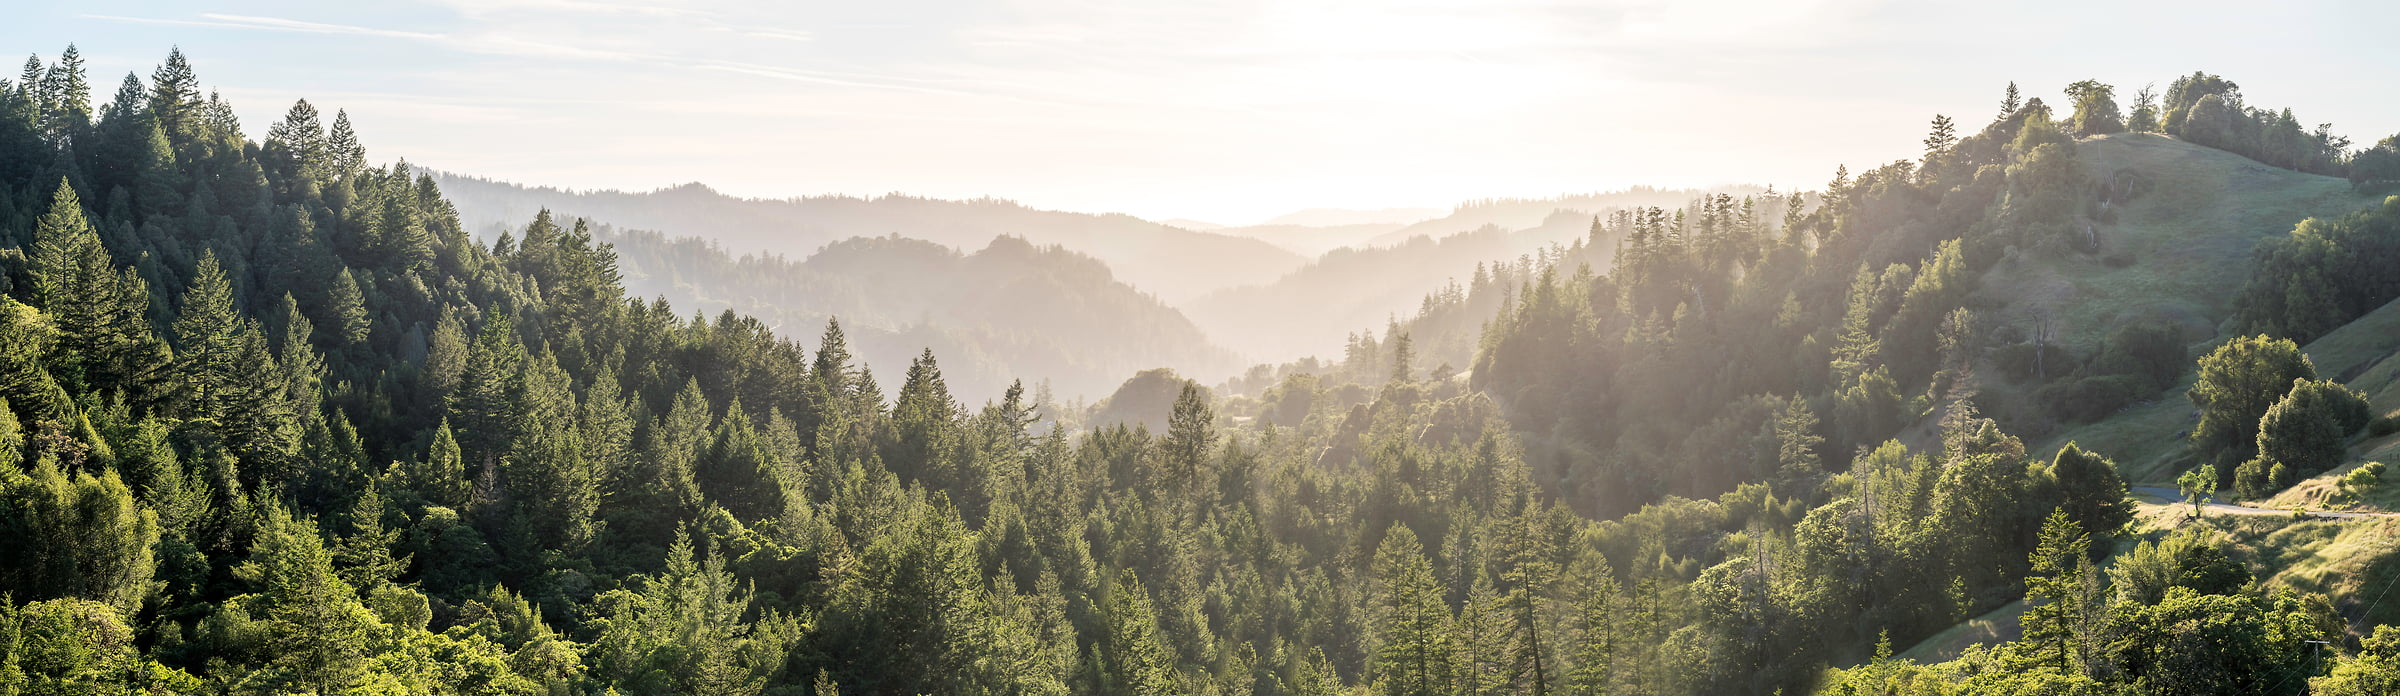 223 megapixels! A very high resolution, large-format VAST photo of the hills in California with forests; fine art landscape photo created by Justin Katz in Northern California